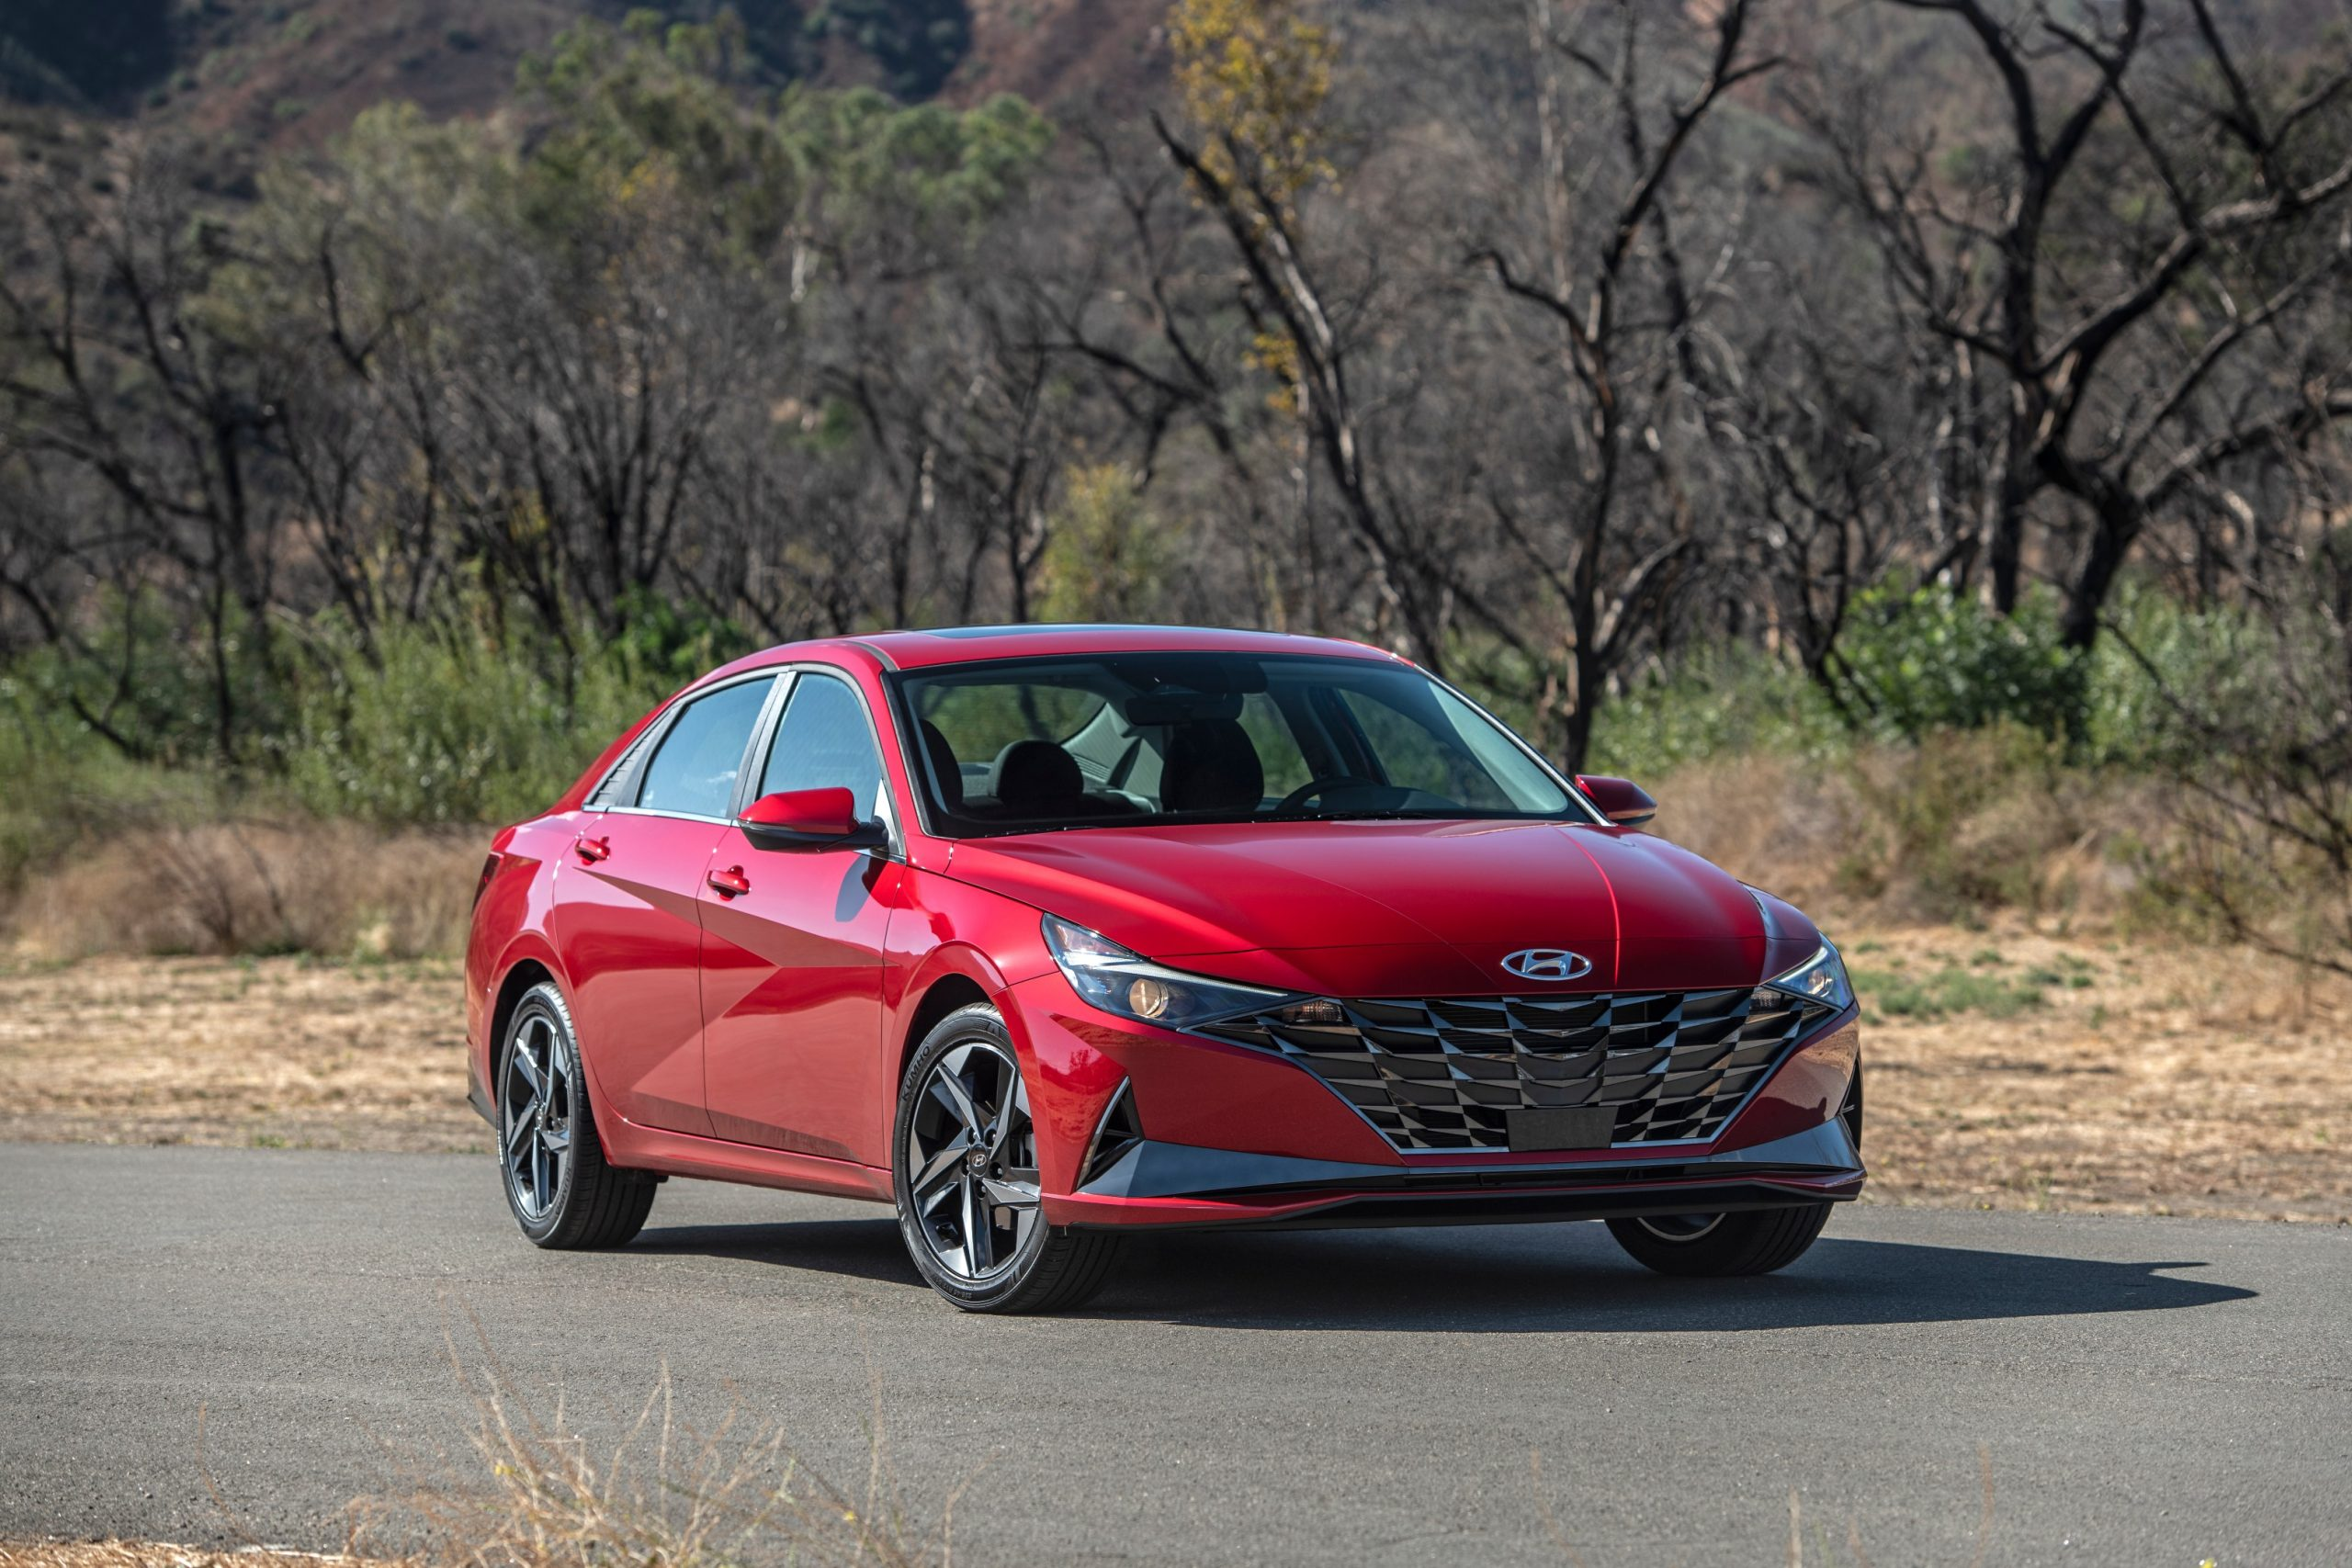 2021 North American Car of the Year